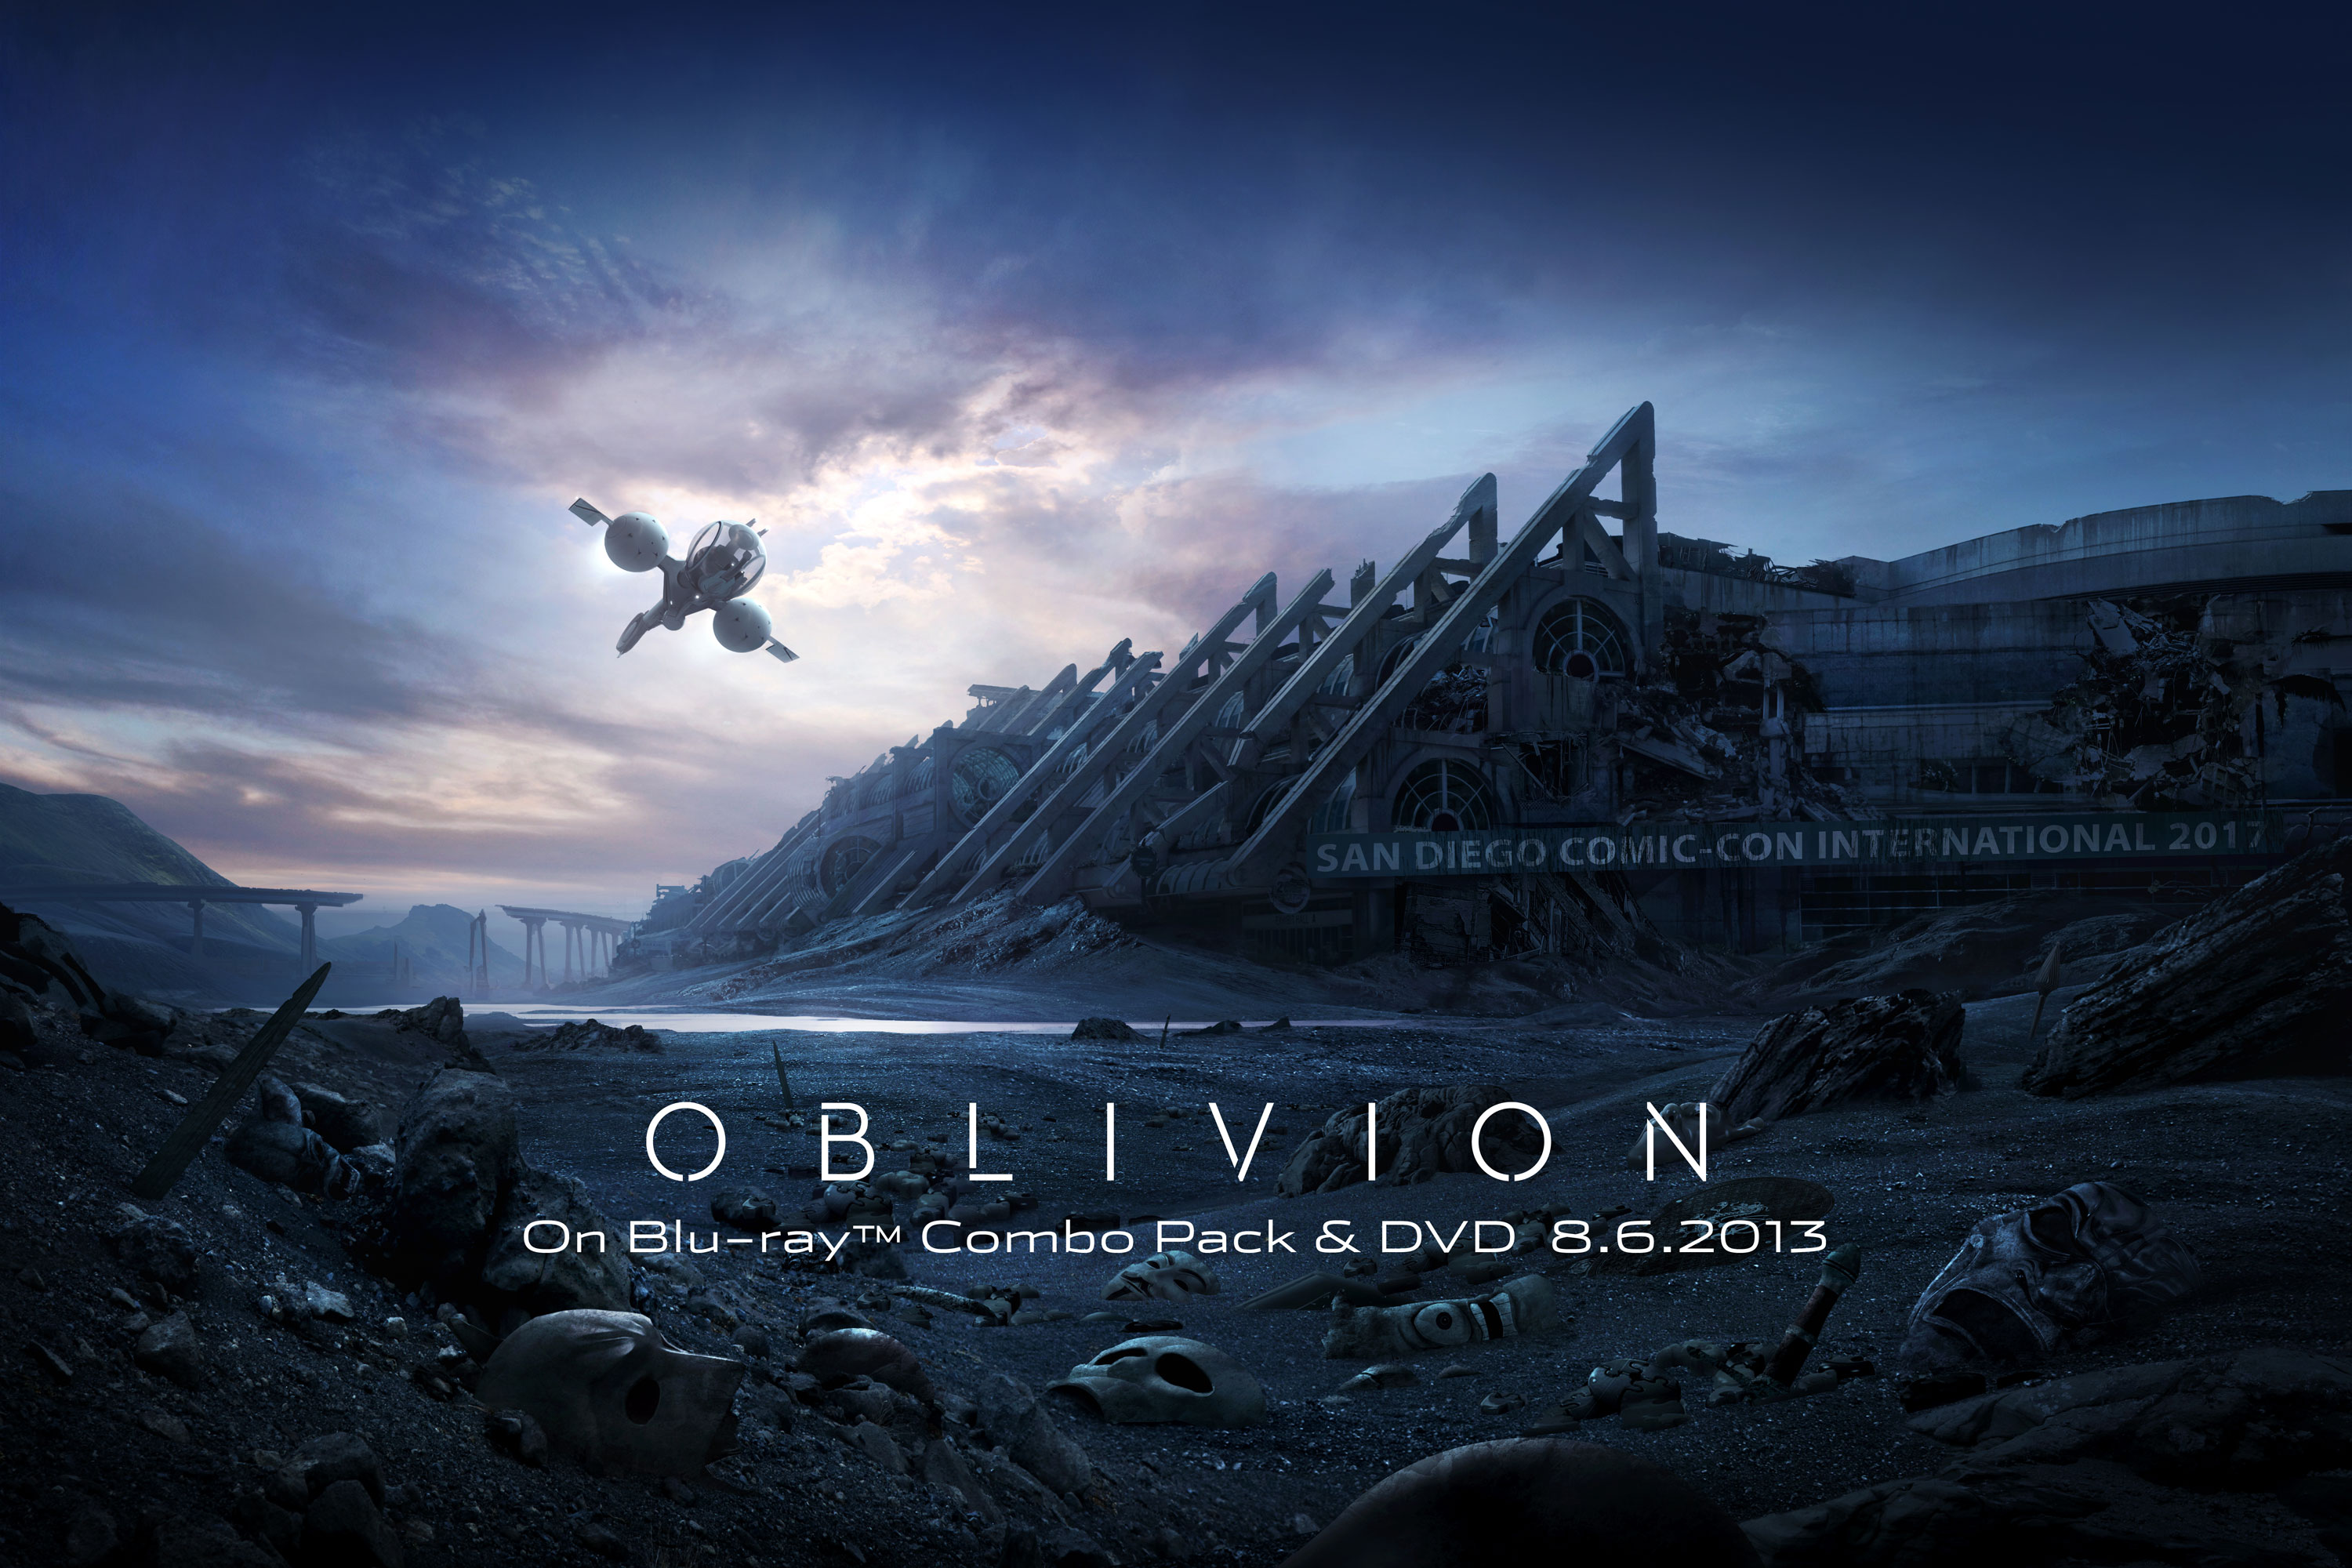 Comic-Con Meets Oblivion in a New Piece of Exclusive Art ...